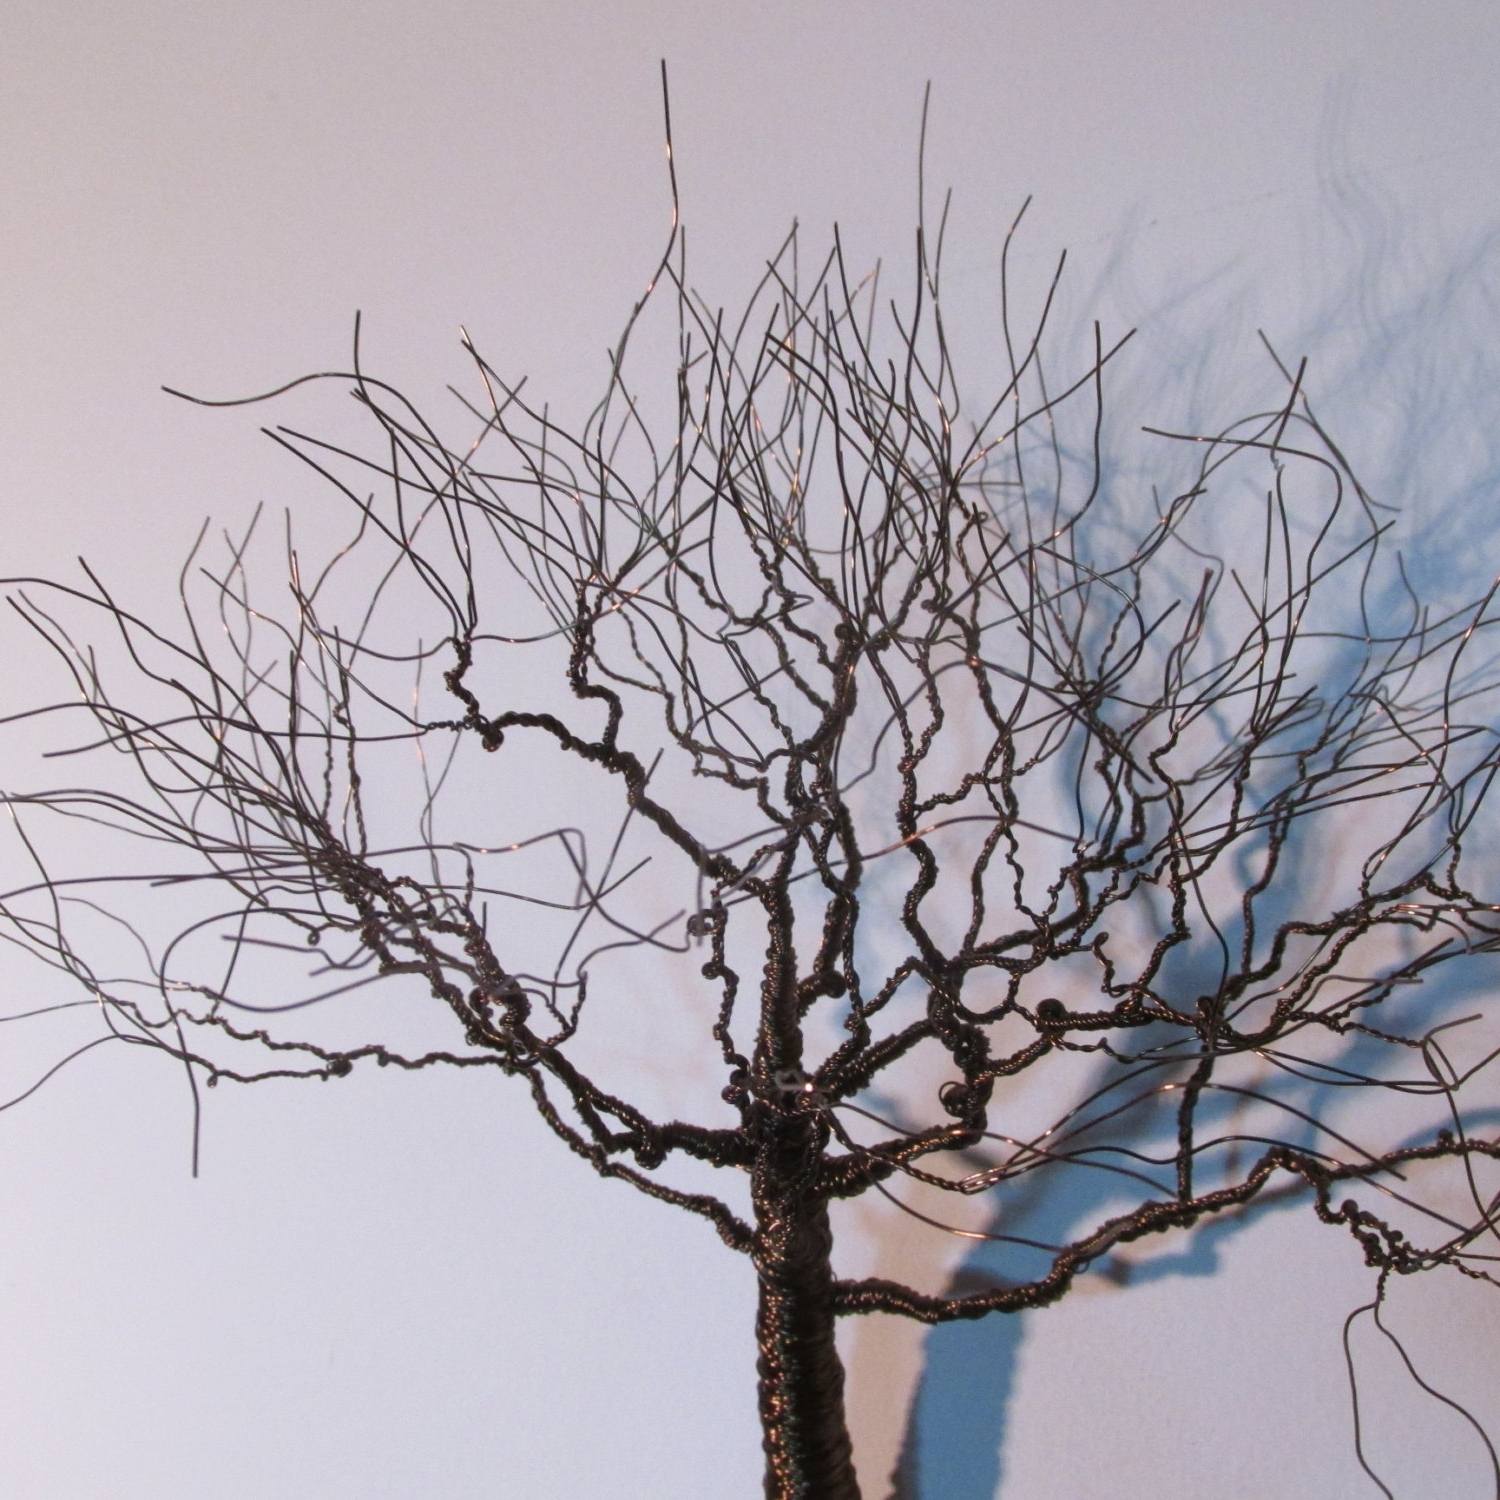 Wall Art Decor Ideas: Bronze Decorations Metal Wall Art Tree Brown Within Favorite Metal Wall Art Trees And Branches (View 12 of 15)